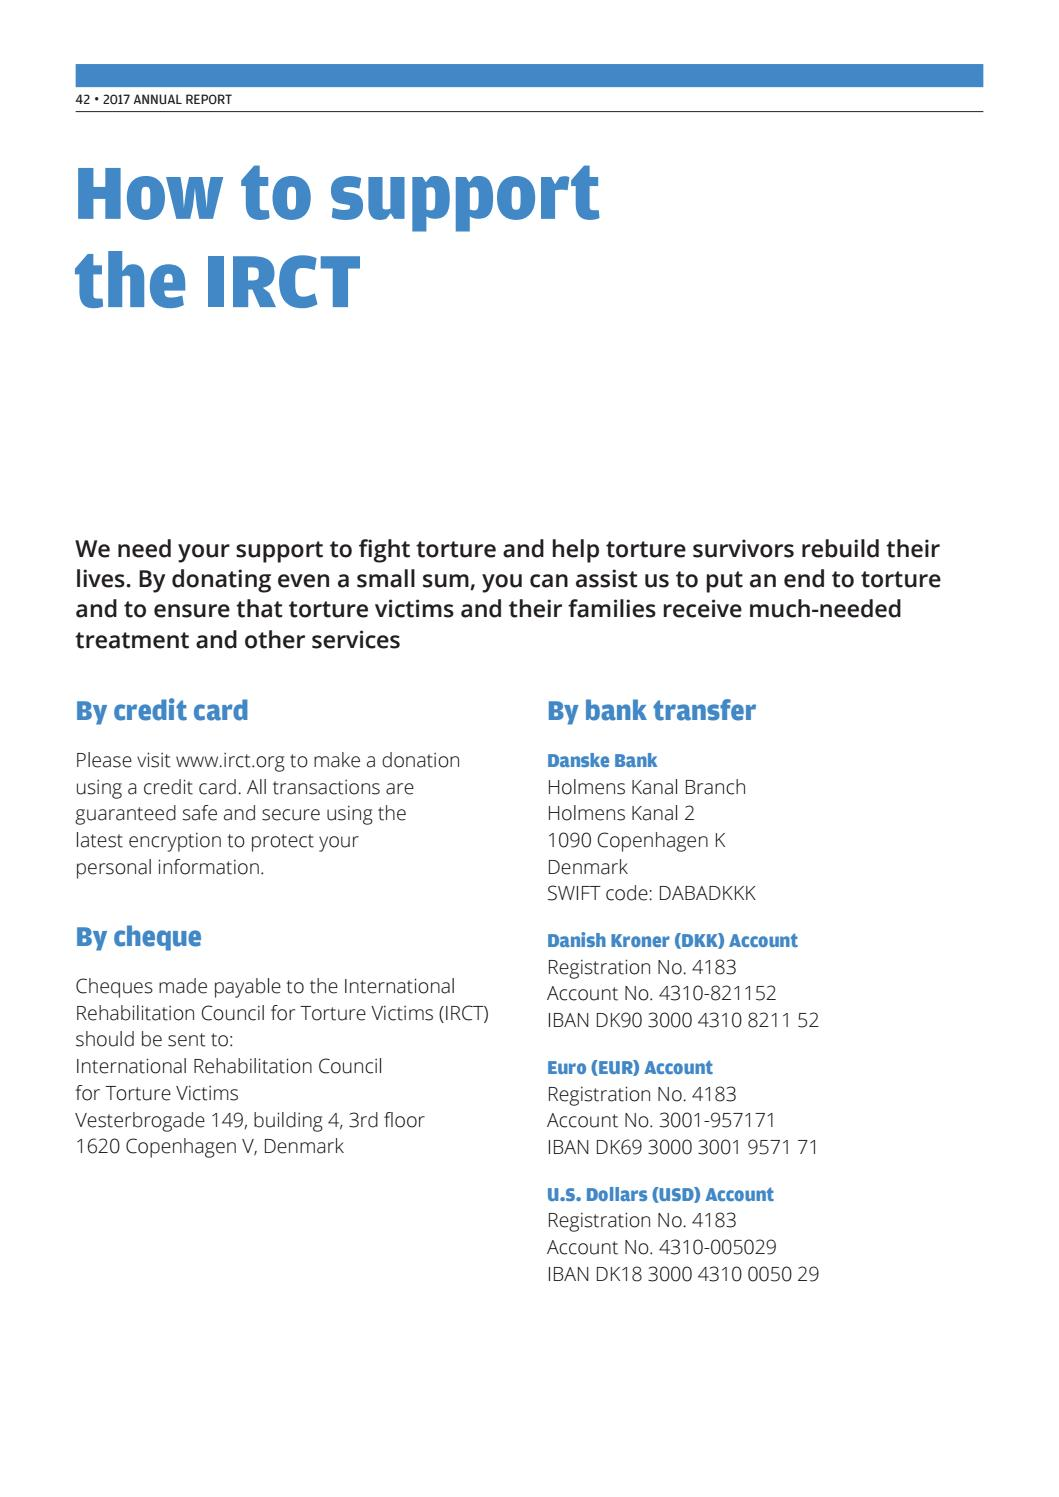 IRCT Annual Report 2017 by IRCT International Rehabilitation